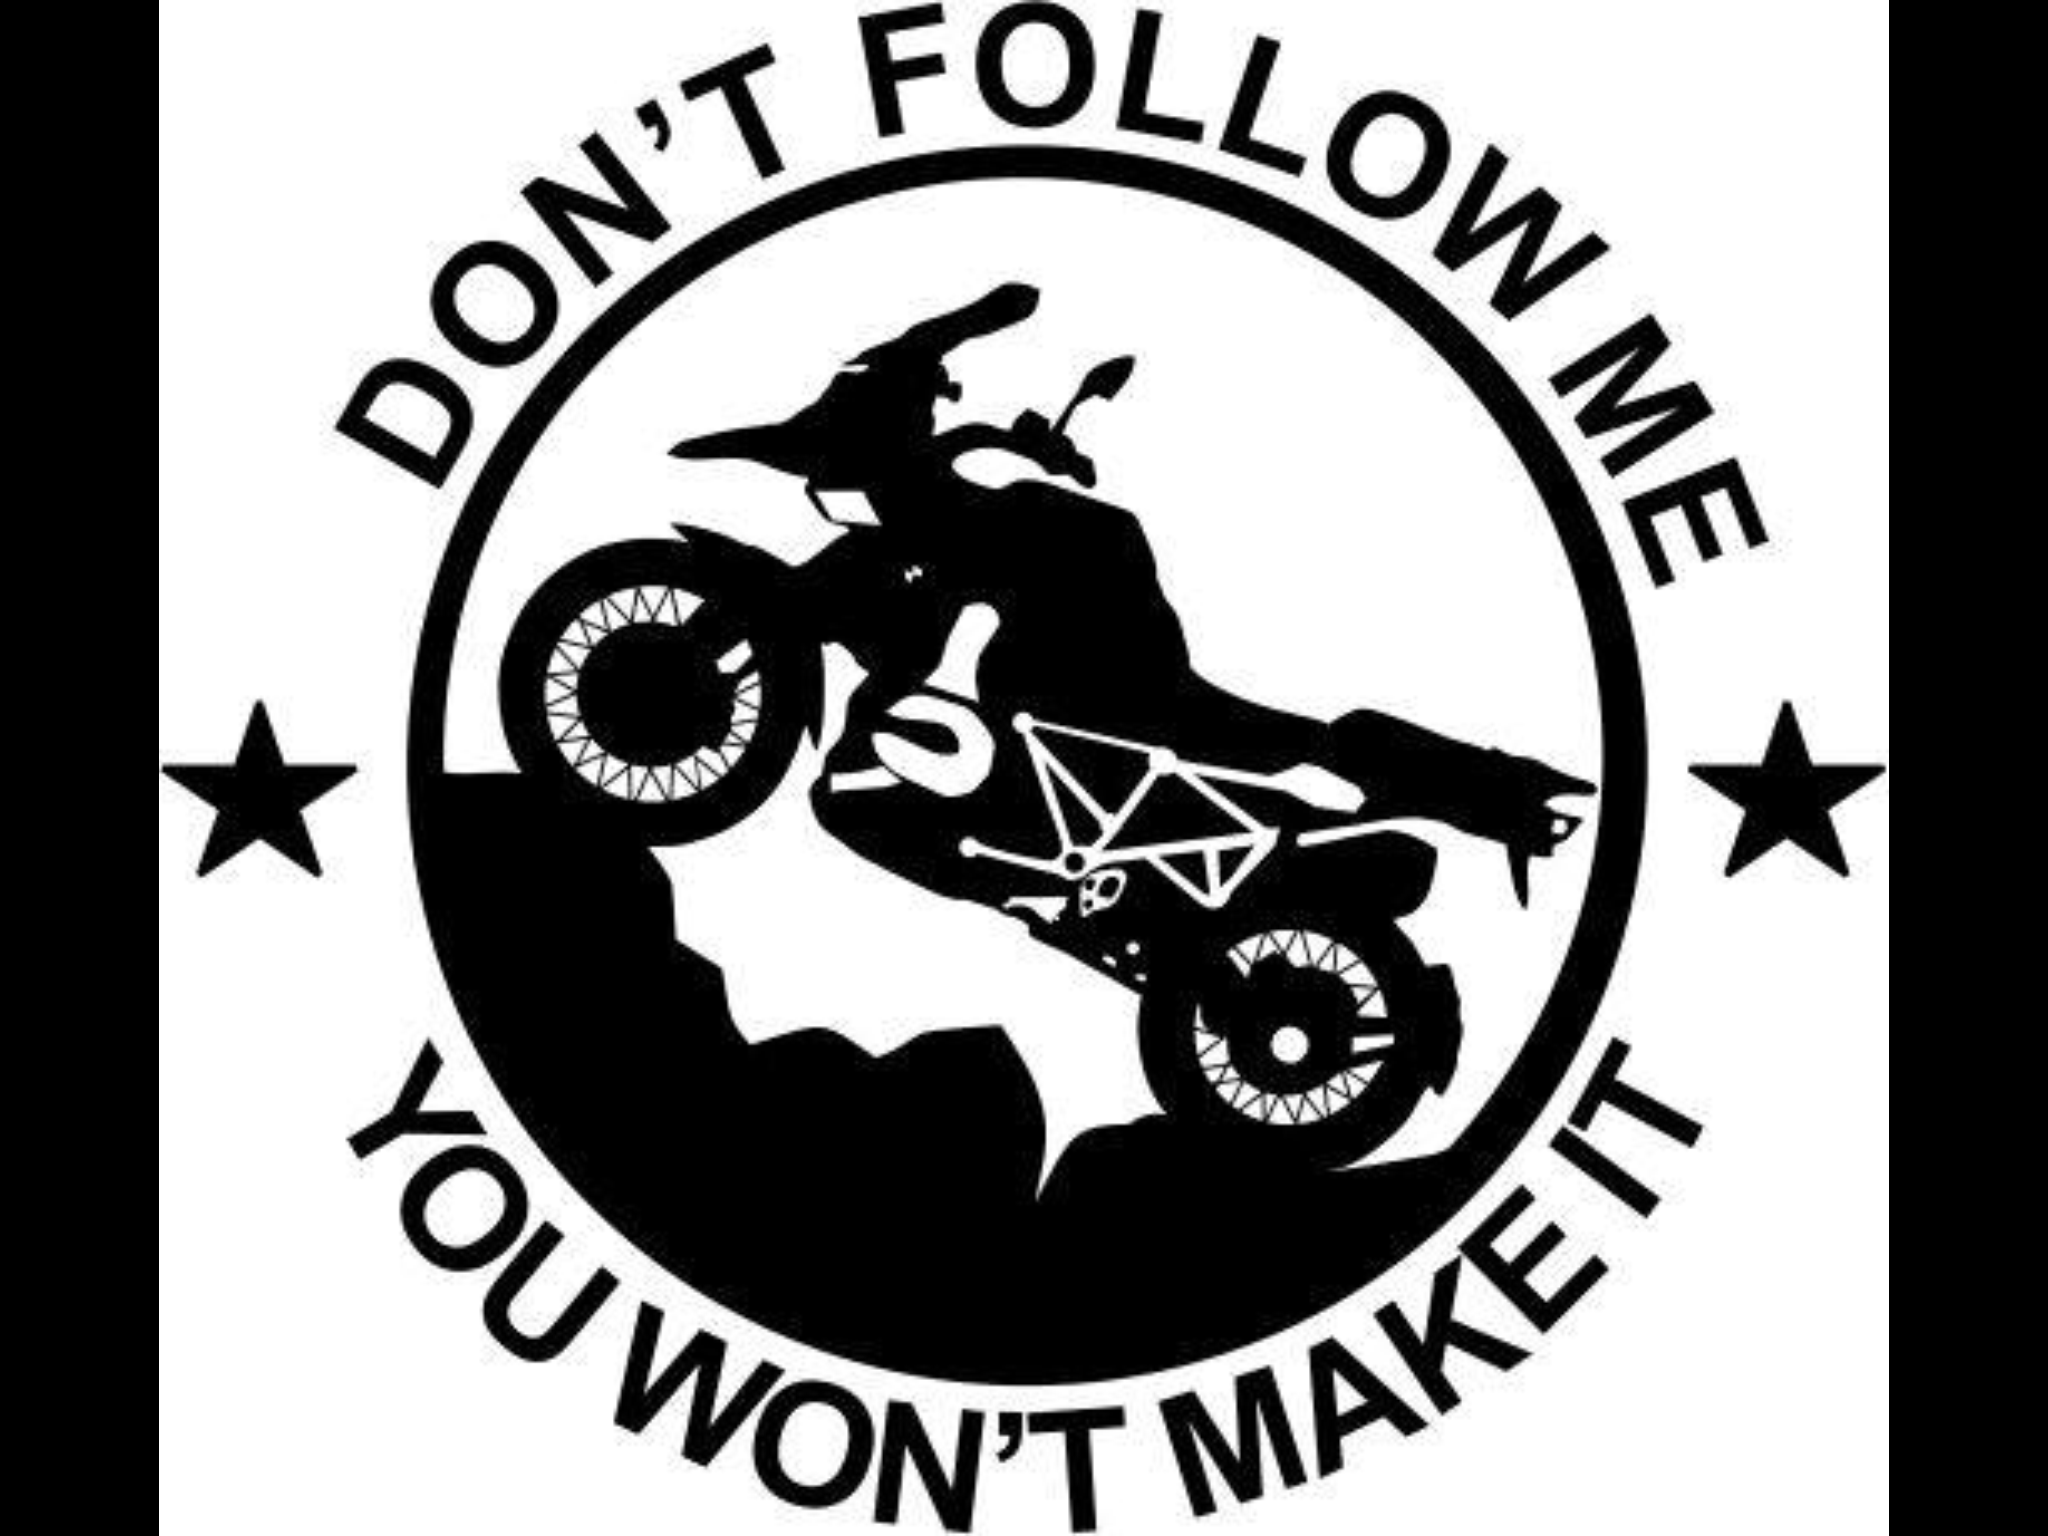 extreme gs rider decal motorbikes pinterest motorcycle Custom Street Bike Gallery extreme gs rider decal